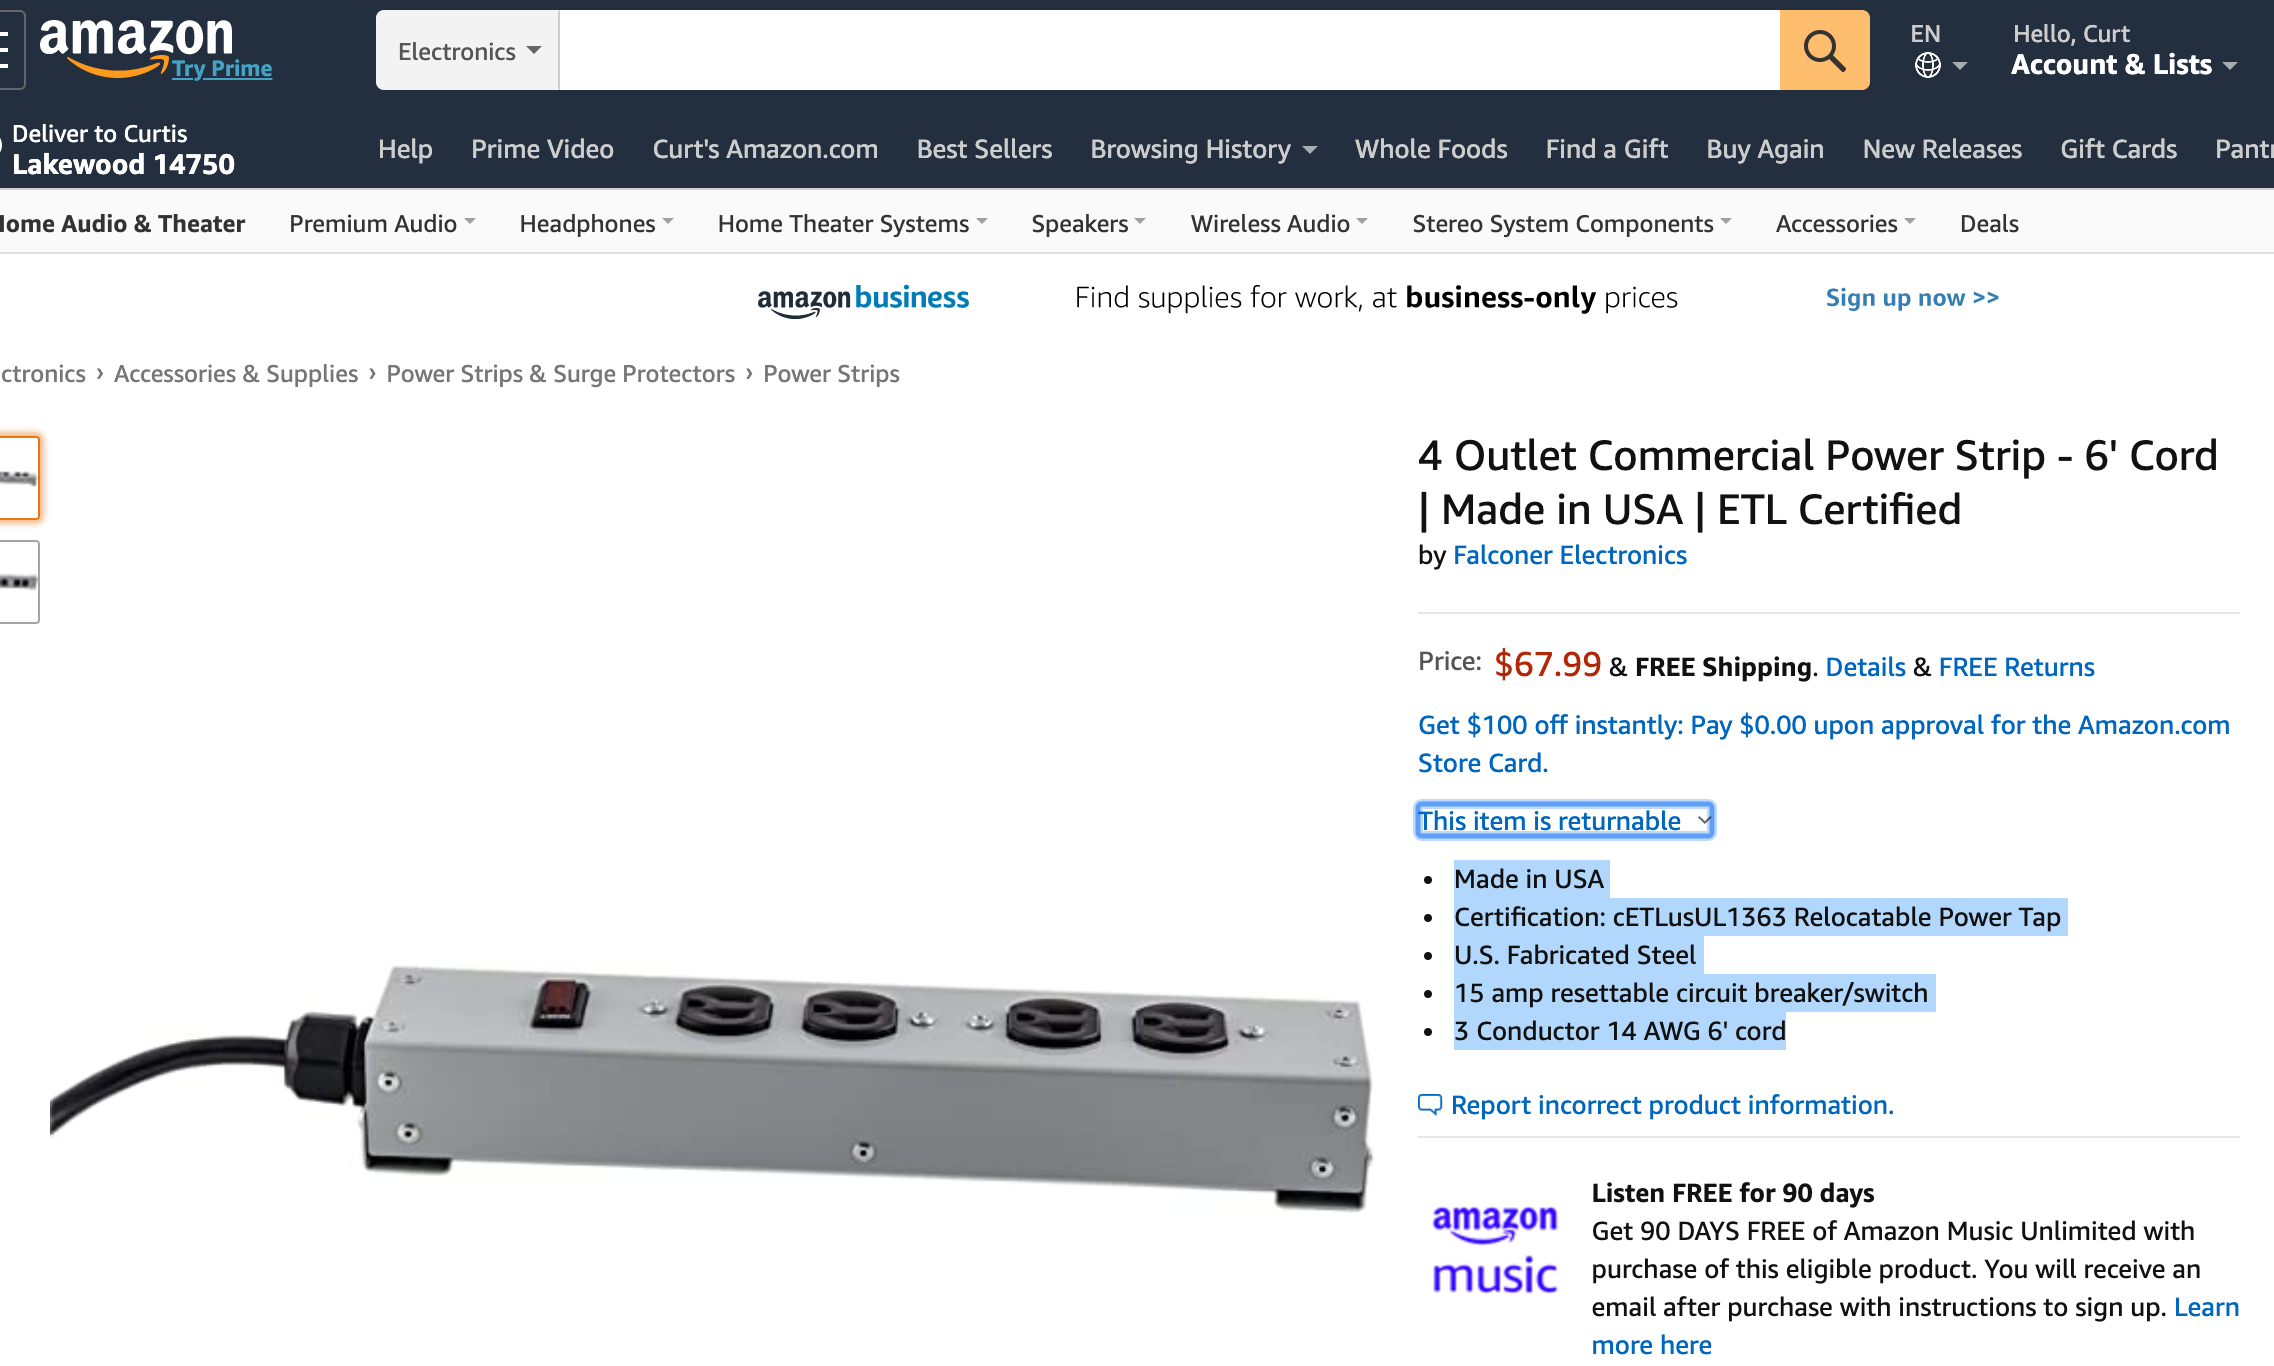 Power Strips on Amazon, Falconer Electronics Commercial Power Strips on Amazon * Made in USA